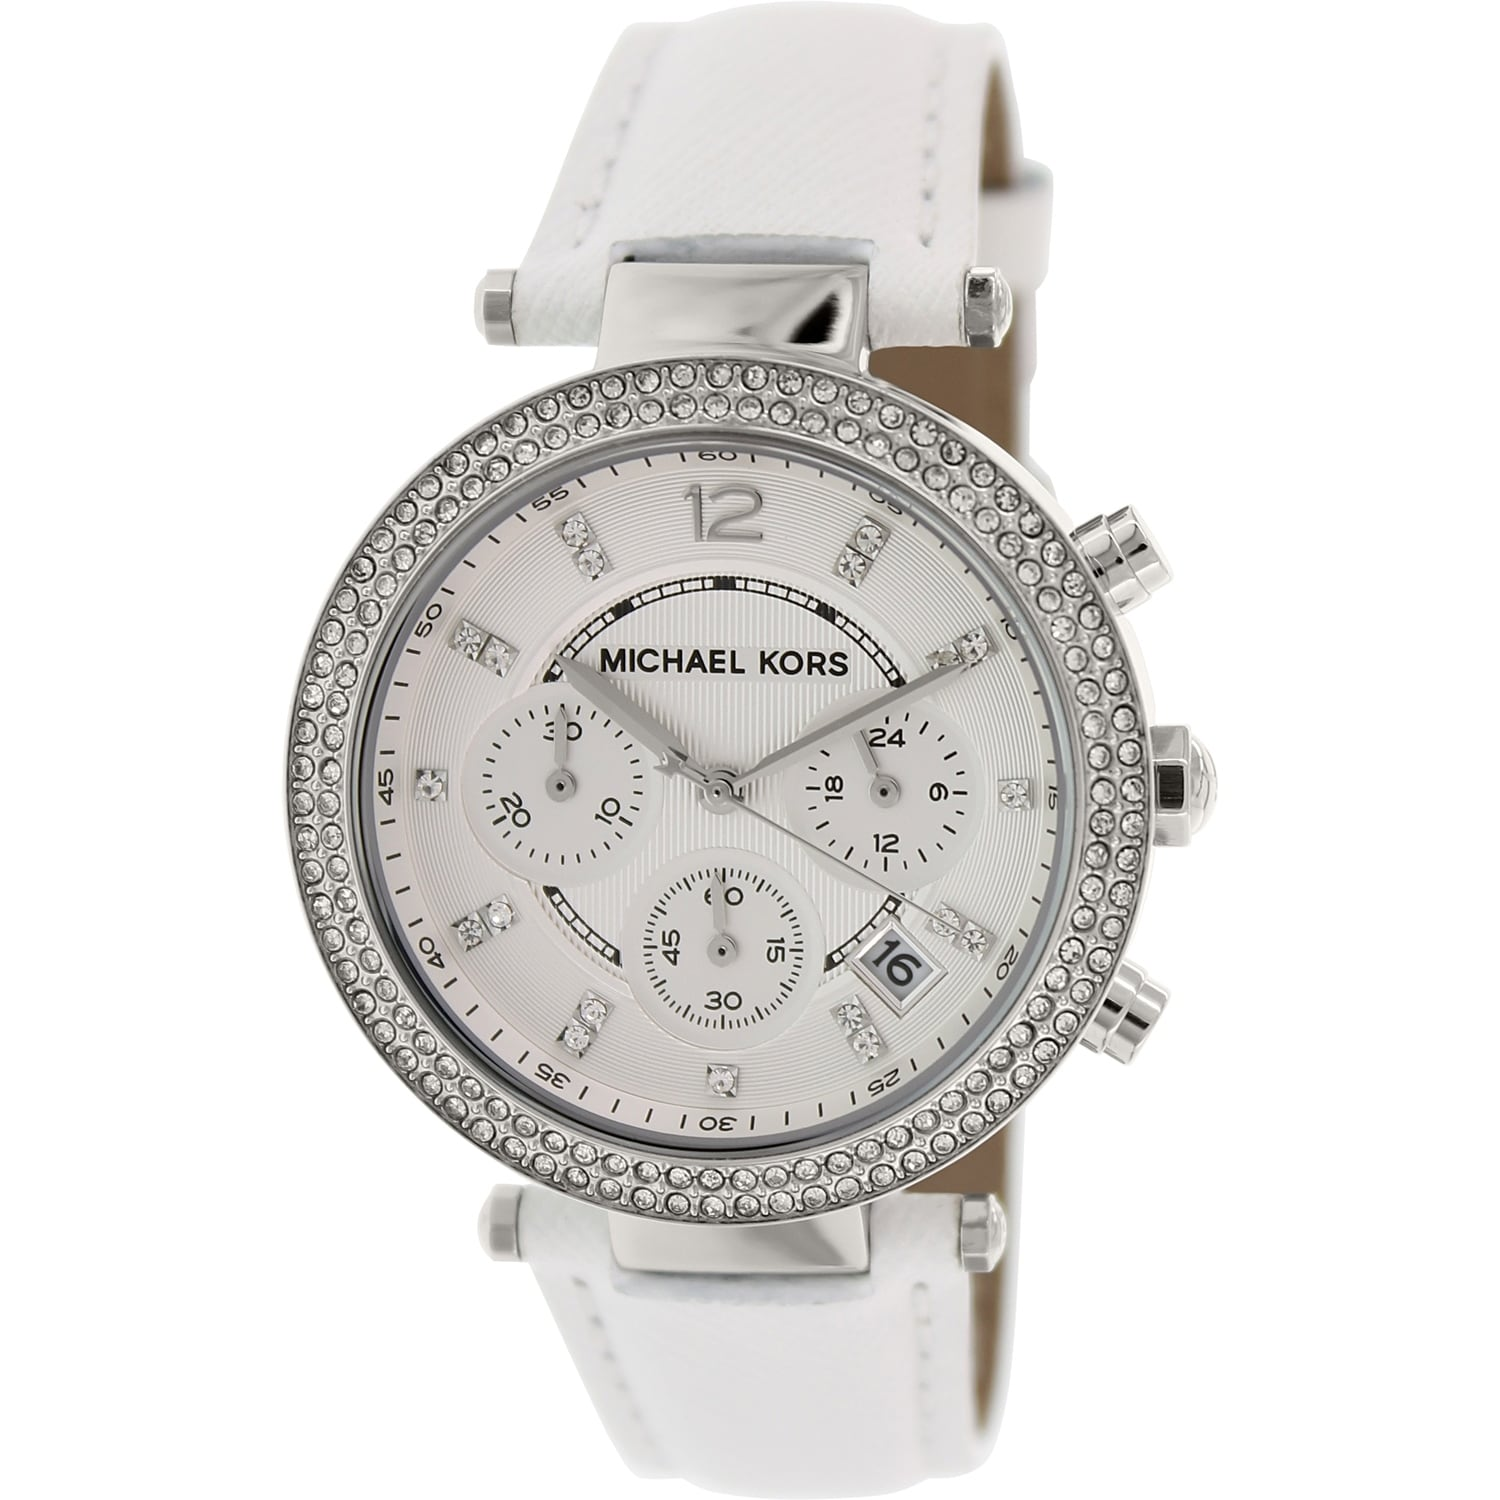 befde18e73d2 Michael Kors Women s Watches